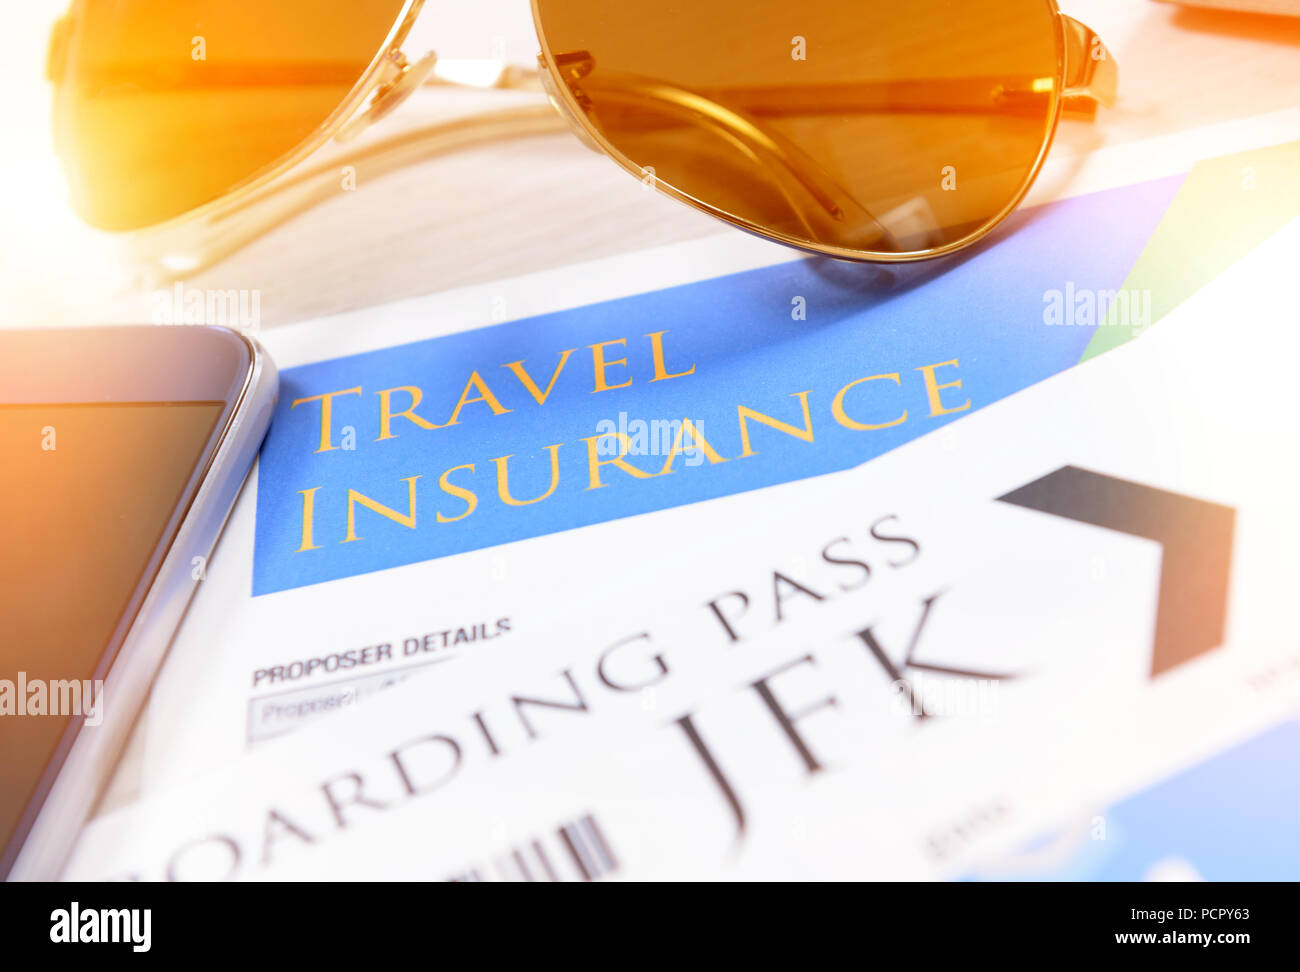 Airline boarding pass tickets with travel insurance,  sunglasses, mobile phone - Stock Image